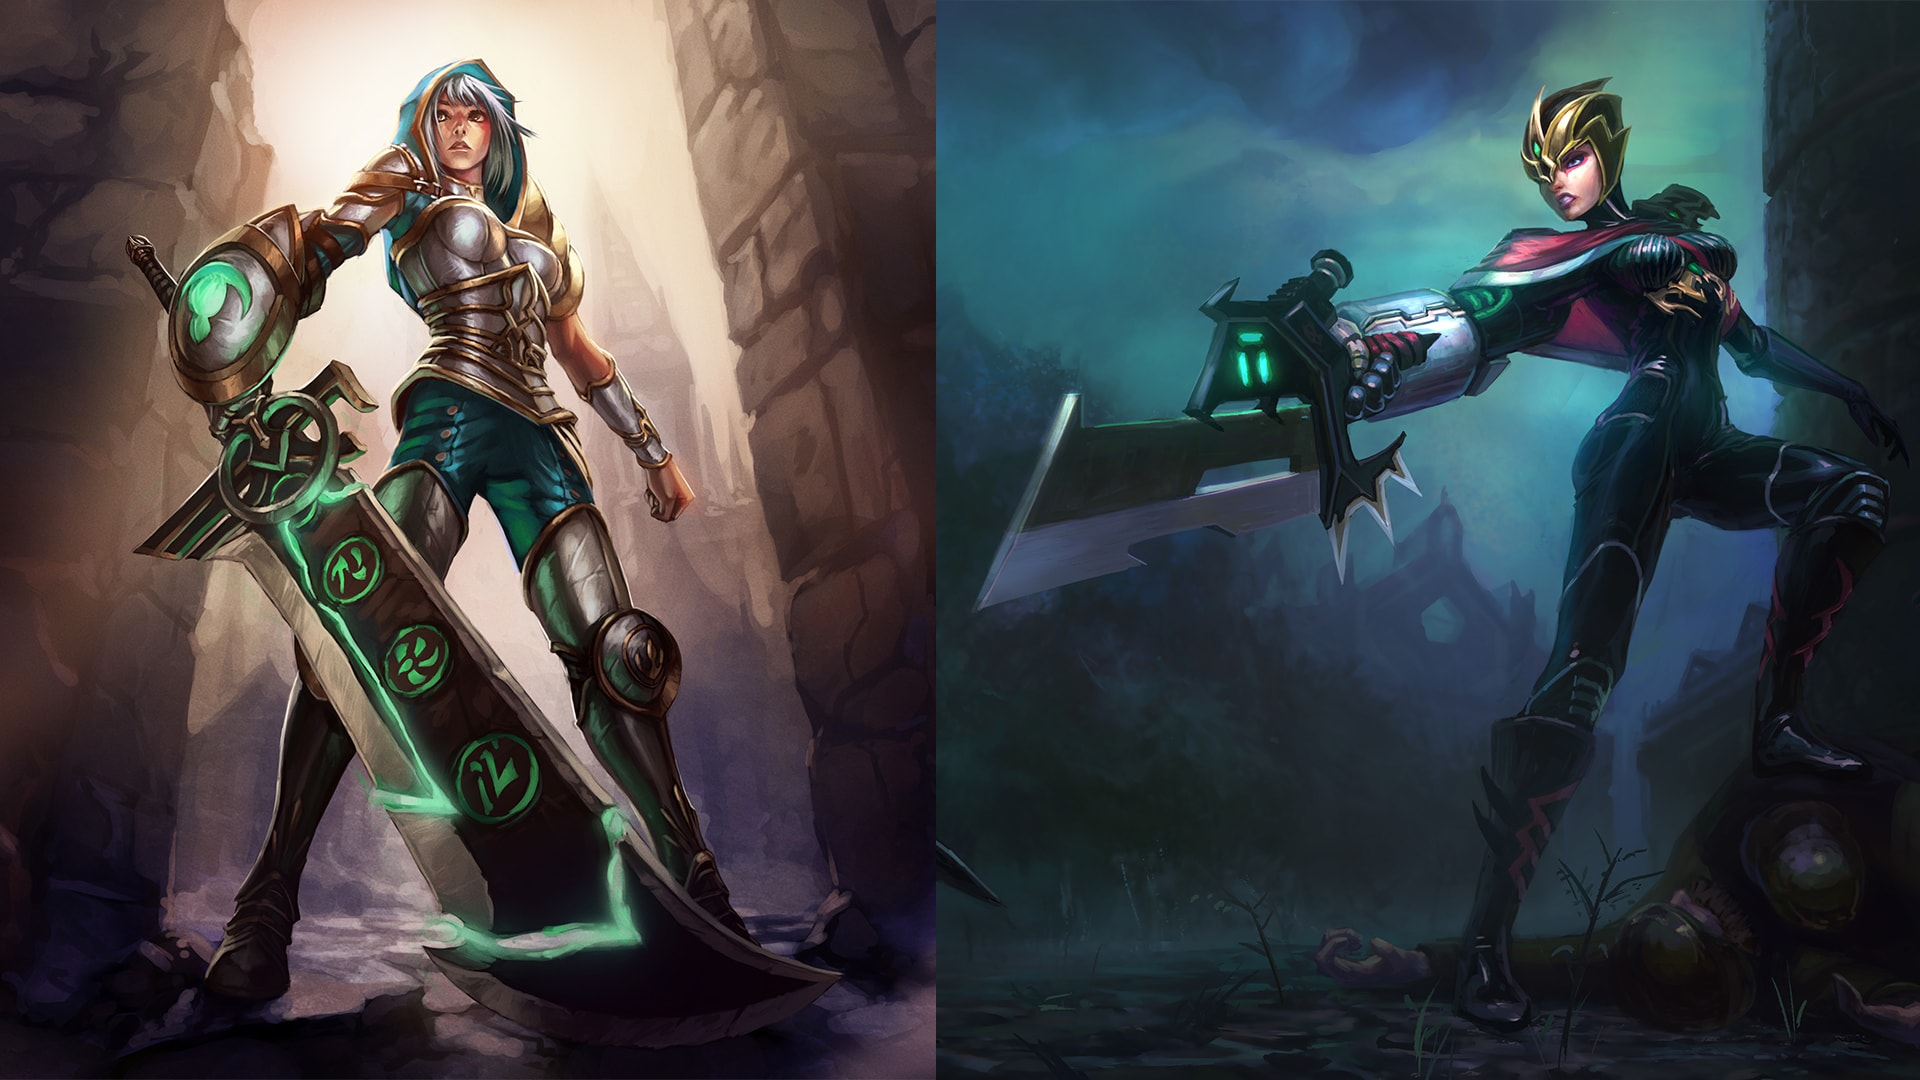 Riven's two release skins were meant to show two possible outcomes of her wandering: Redeemed Riven forged her own path and became semi-holy, while Crimson Elite Riven returned to Noxus and became a commander.